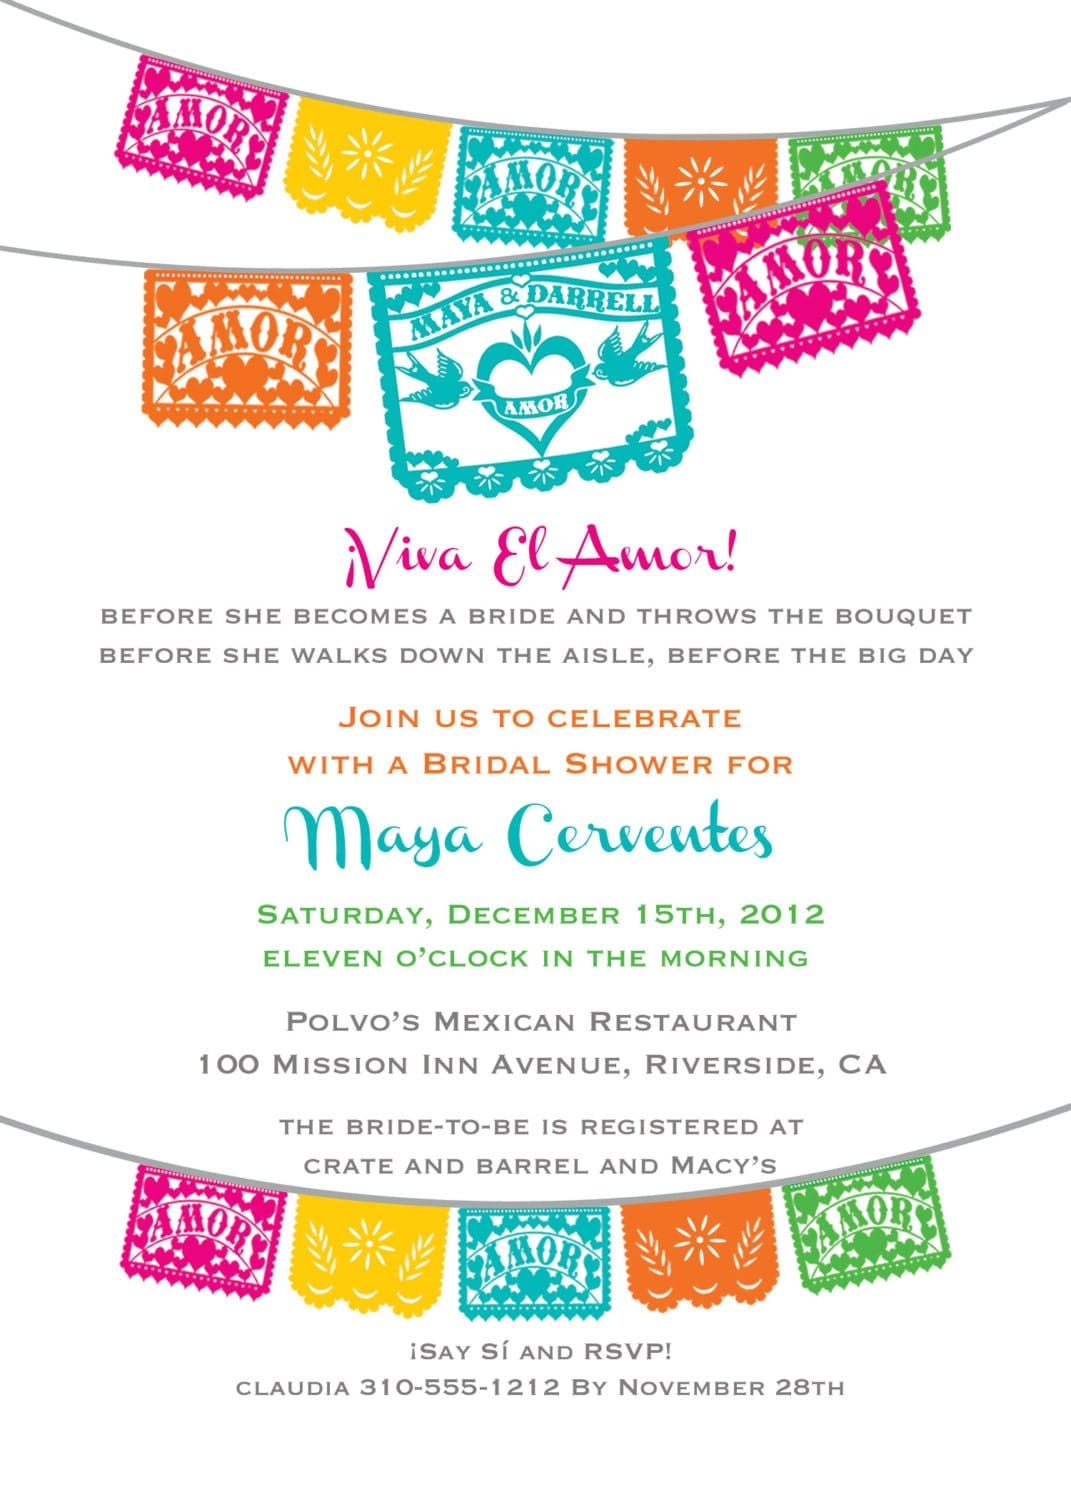 Viva El Amor Bridal Shower Fiesta Papel Picado Invitation Love